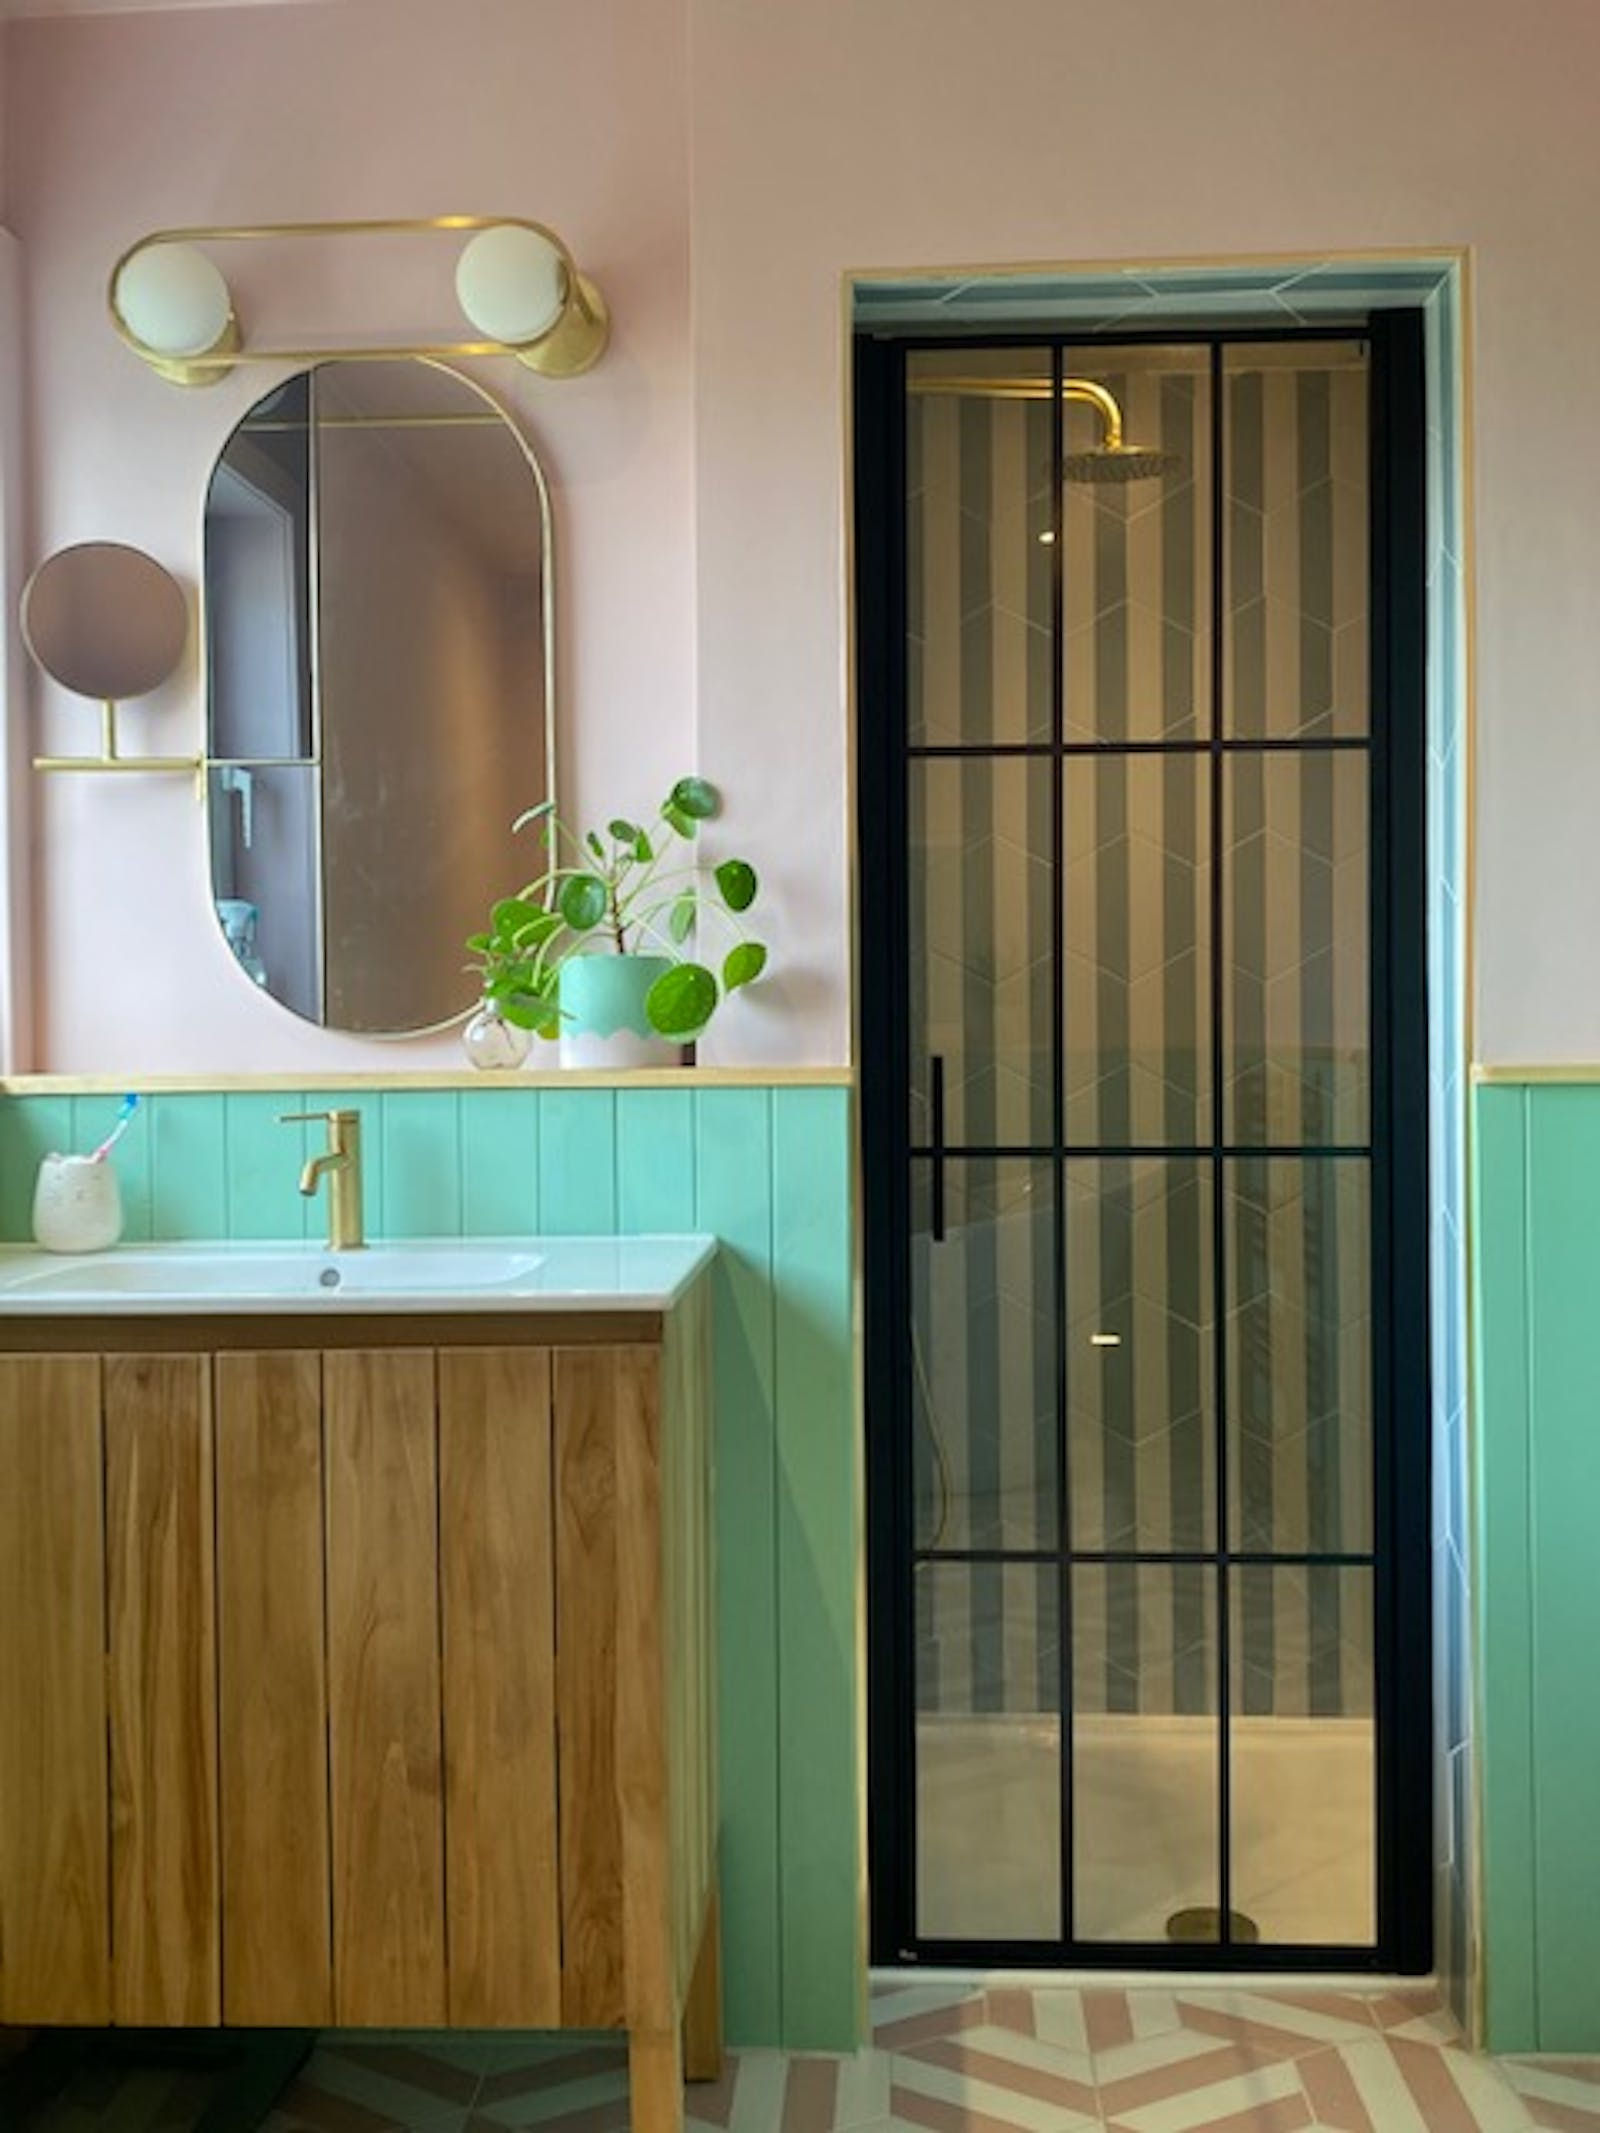 Shower in a pink and neo green bathroom, painted using Lick Pink 03 and Lick Green 08 paints